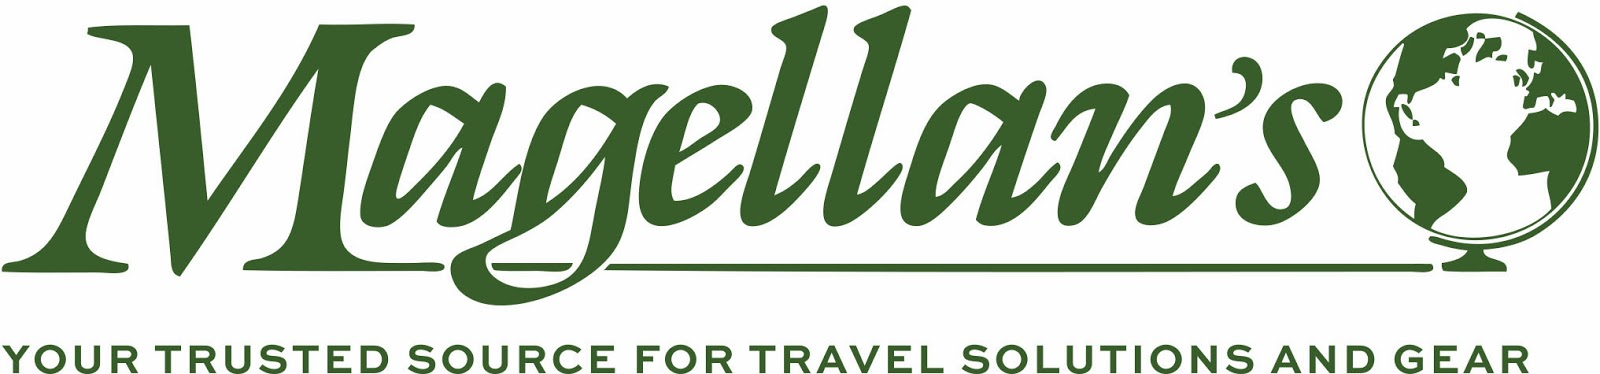 Magellans - Your Trusted Source of Travel Supplies